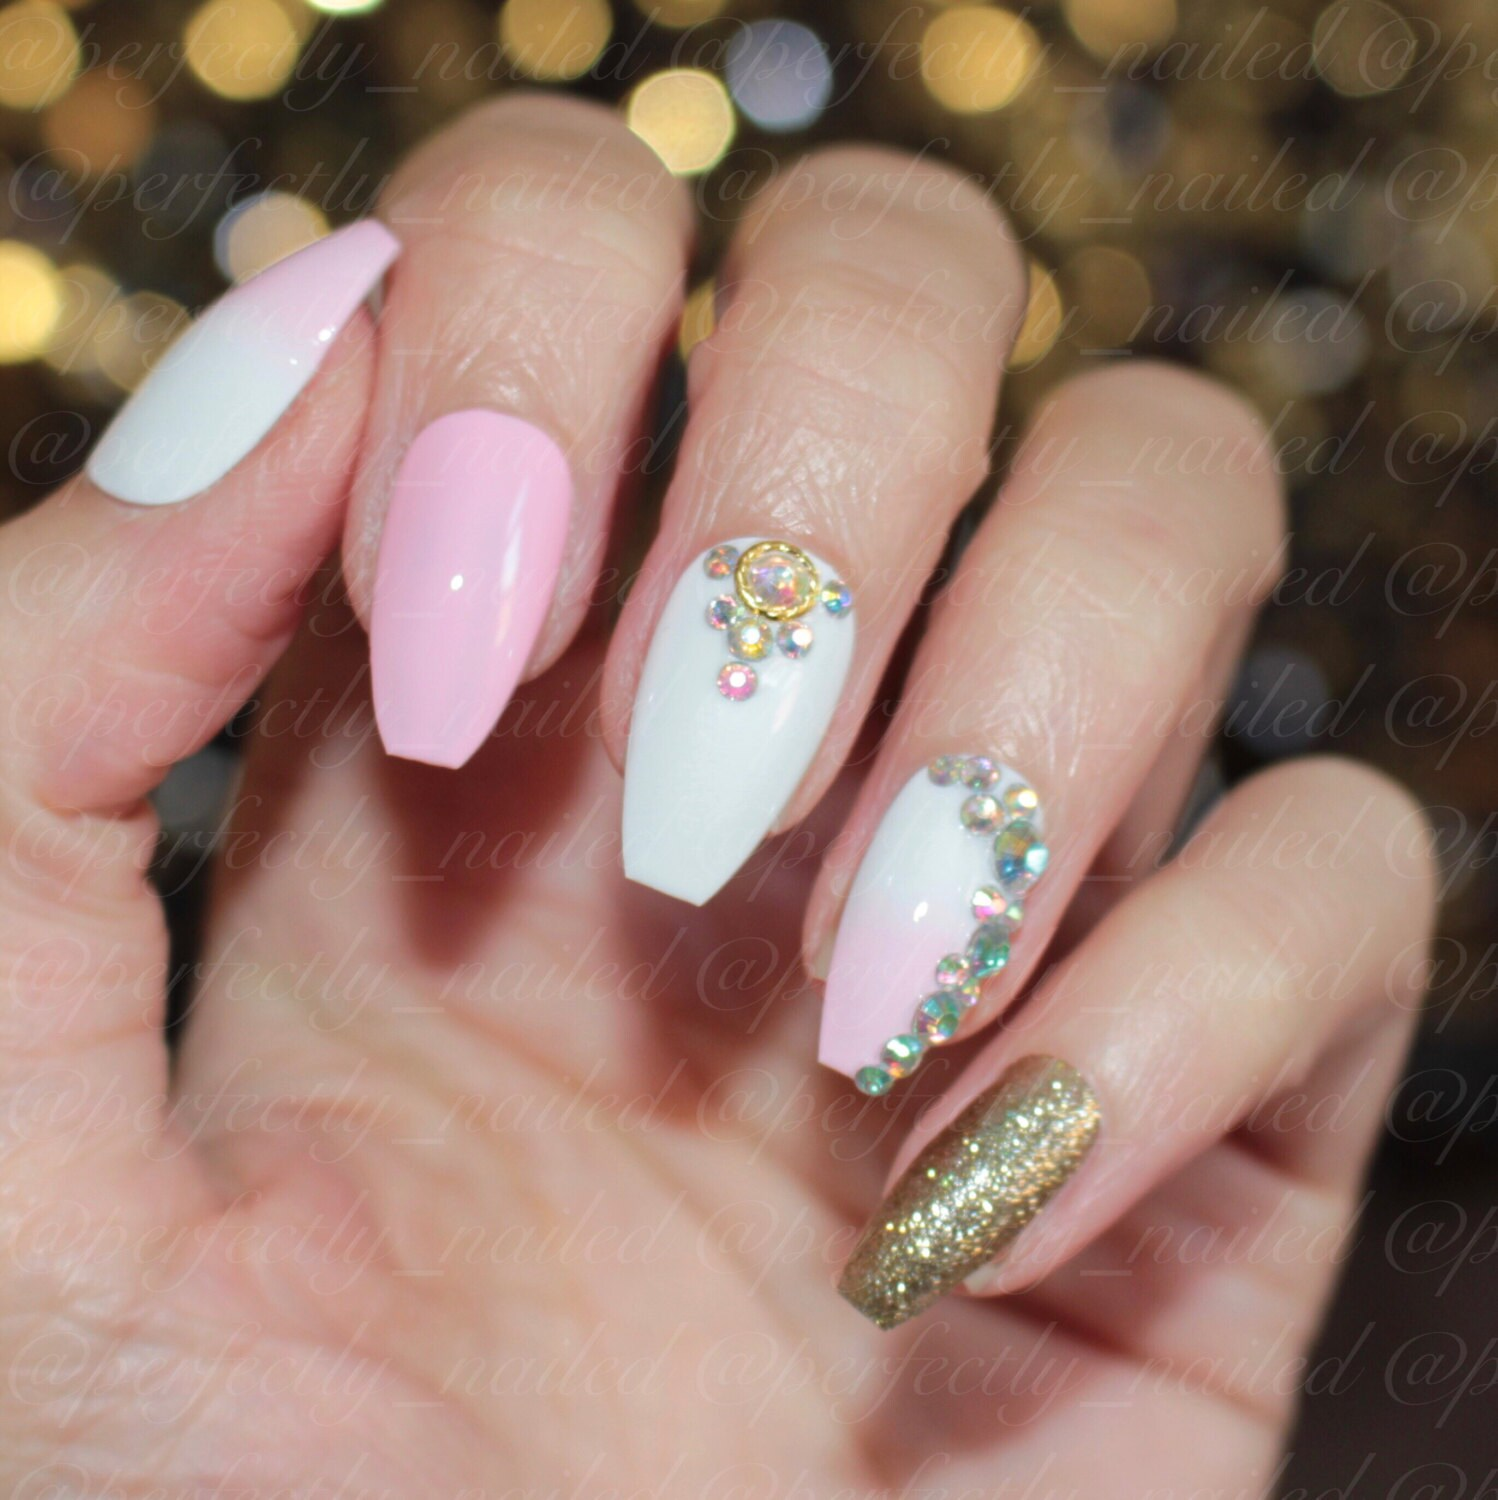 Baby pink white and gold glitter nails with crystals • Handpainted ...